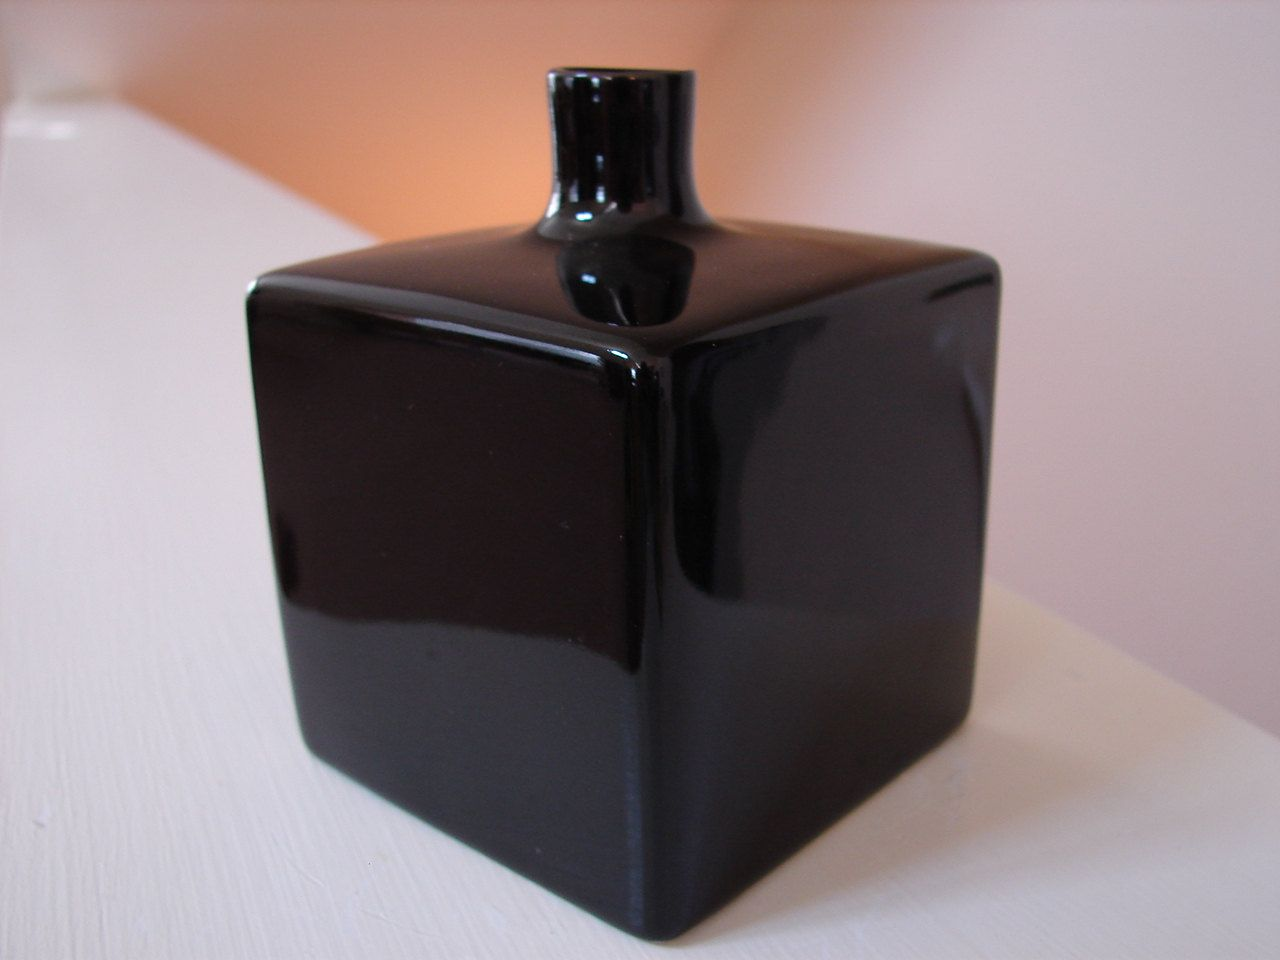 Studio nova black cube art deco style bud vase original box studio nova black cube art deco style bud vase original box reviewsmspy